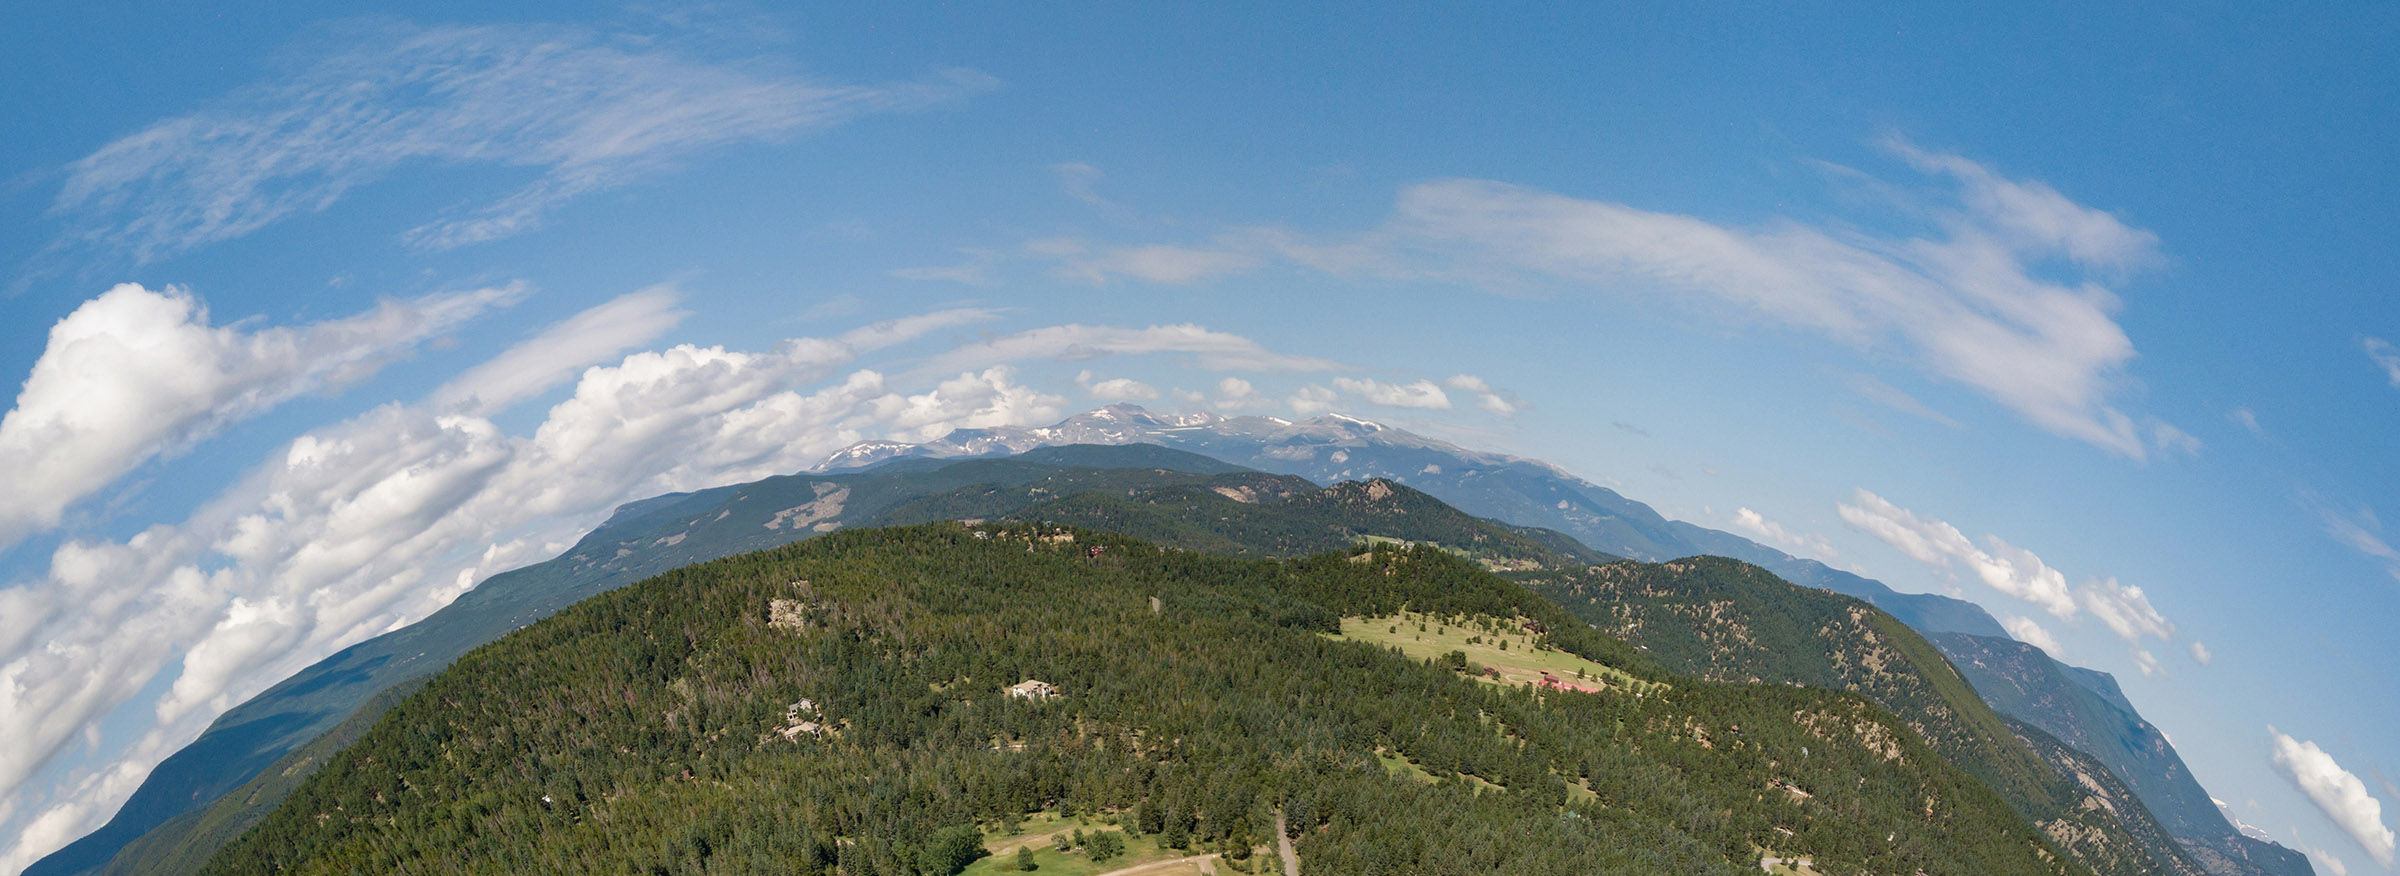 Colorado-Aerial-panorama-mount-evans.jpg